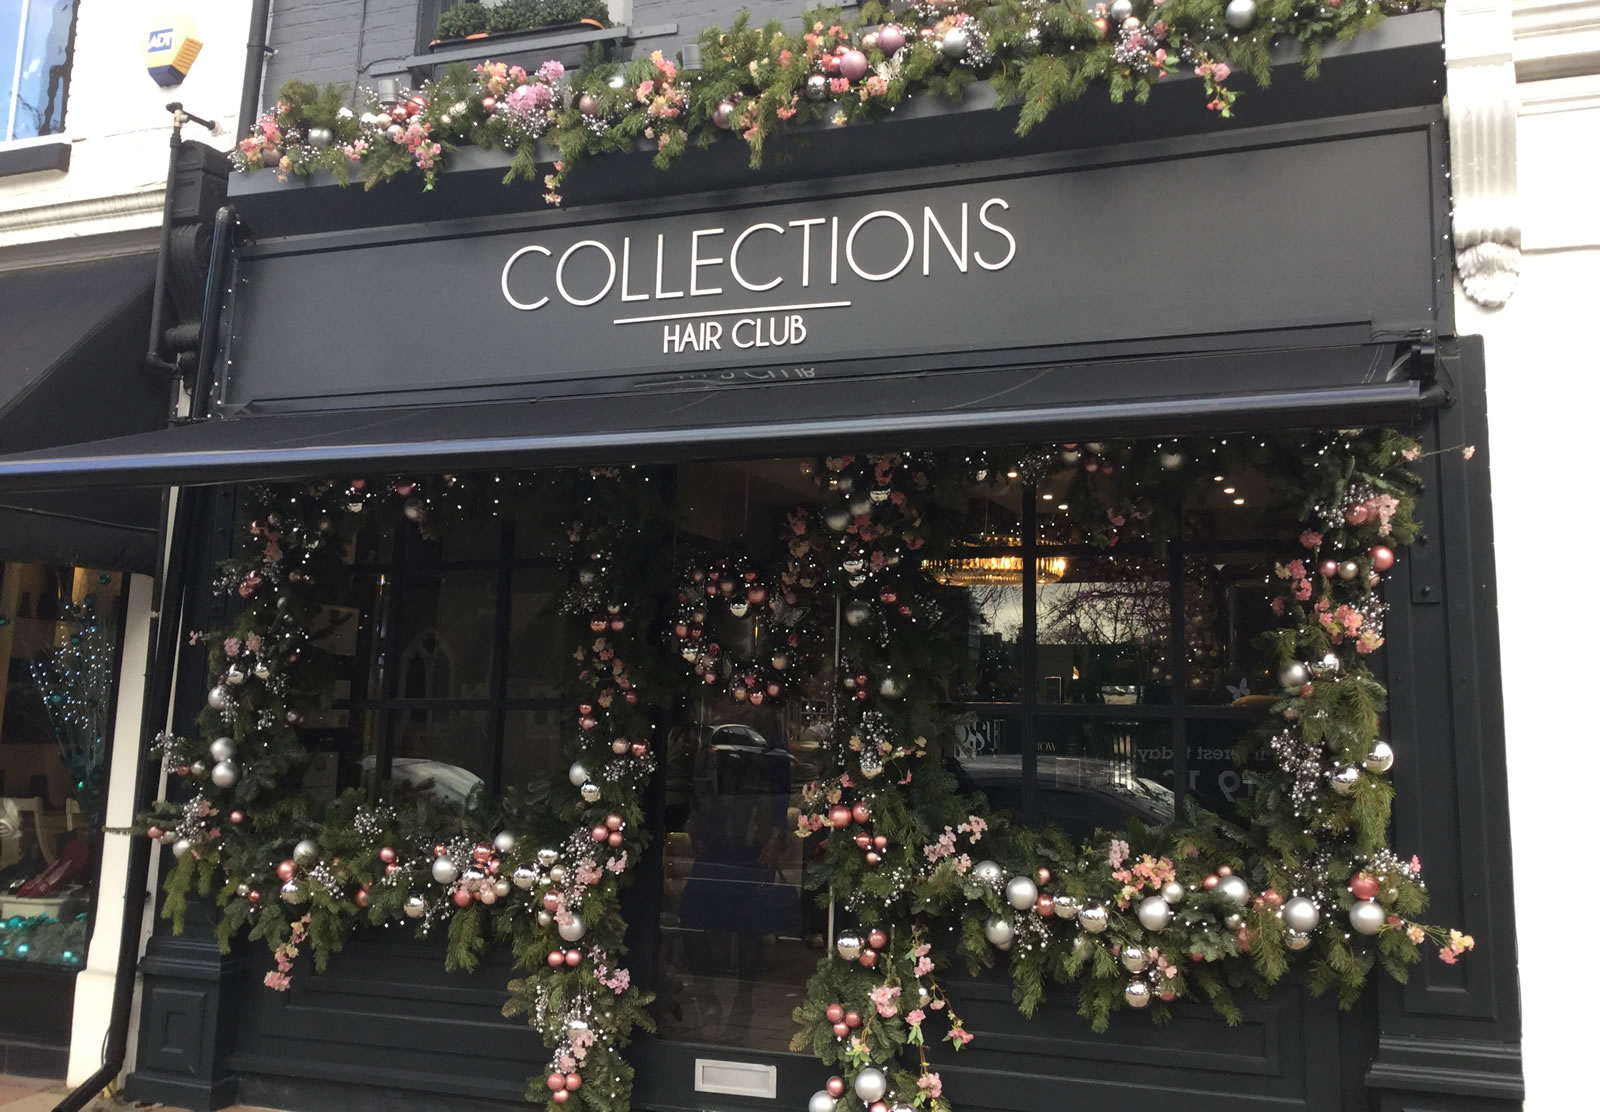 Collections Hair Club - Winners of Weybridge In Bloom Christmas Window Competition